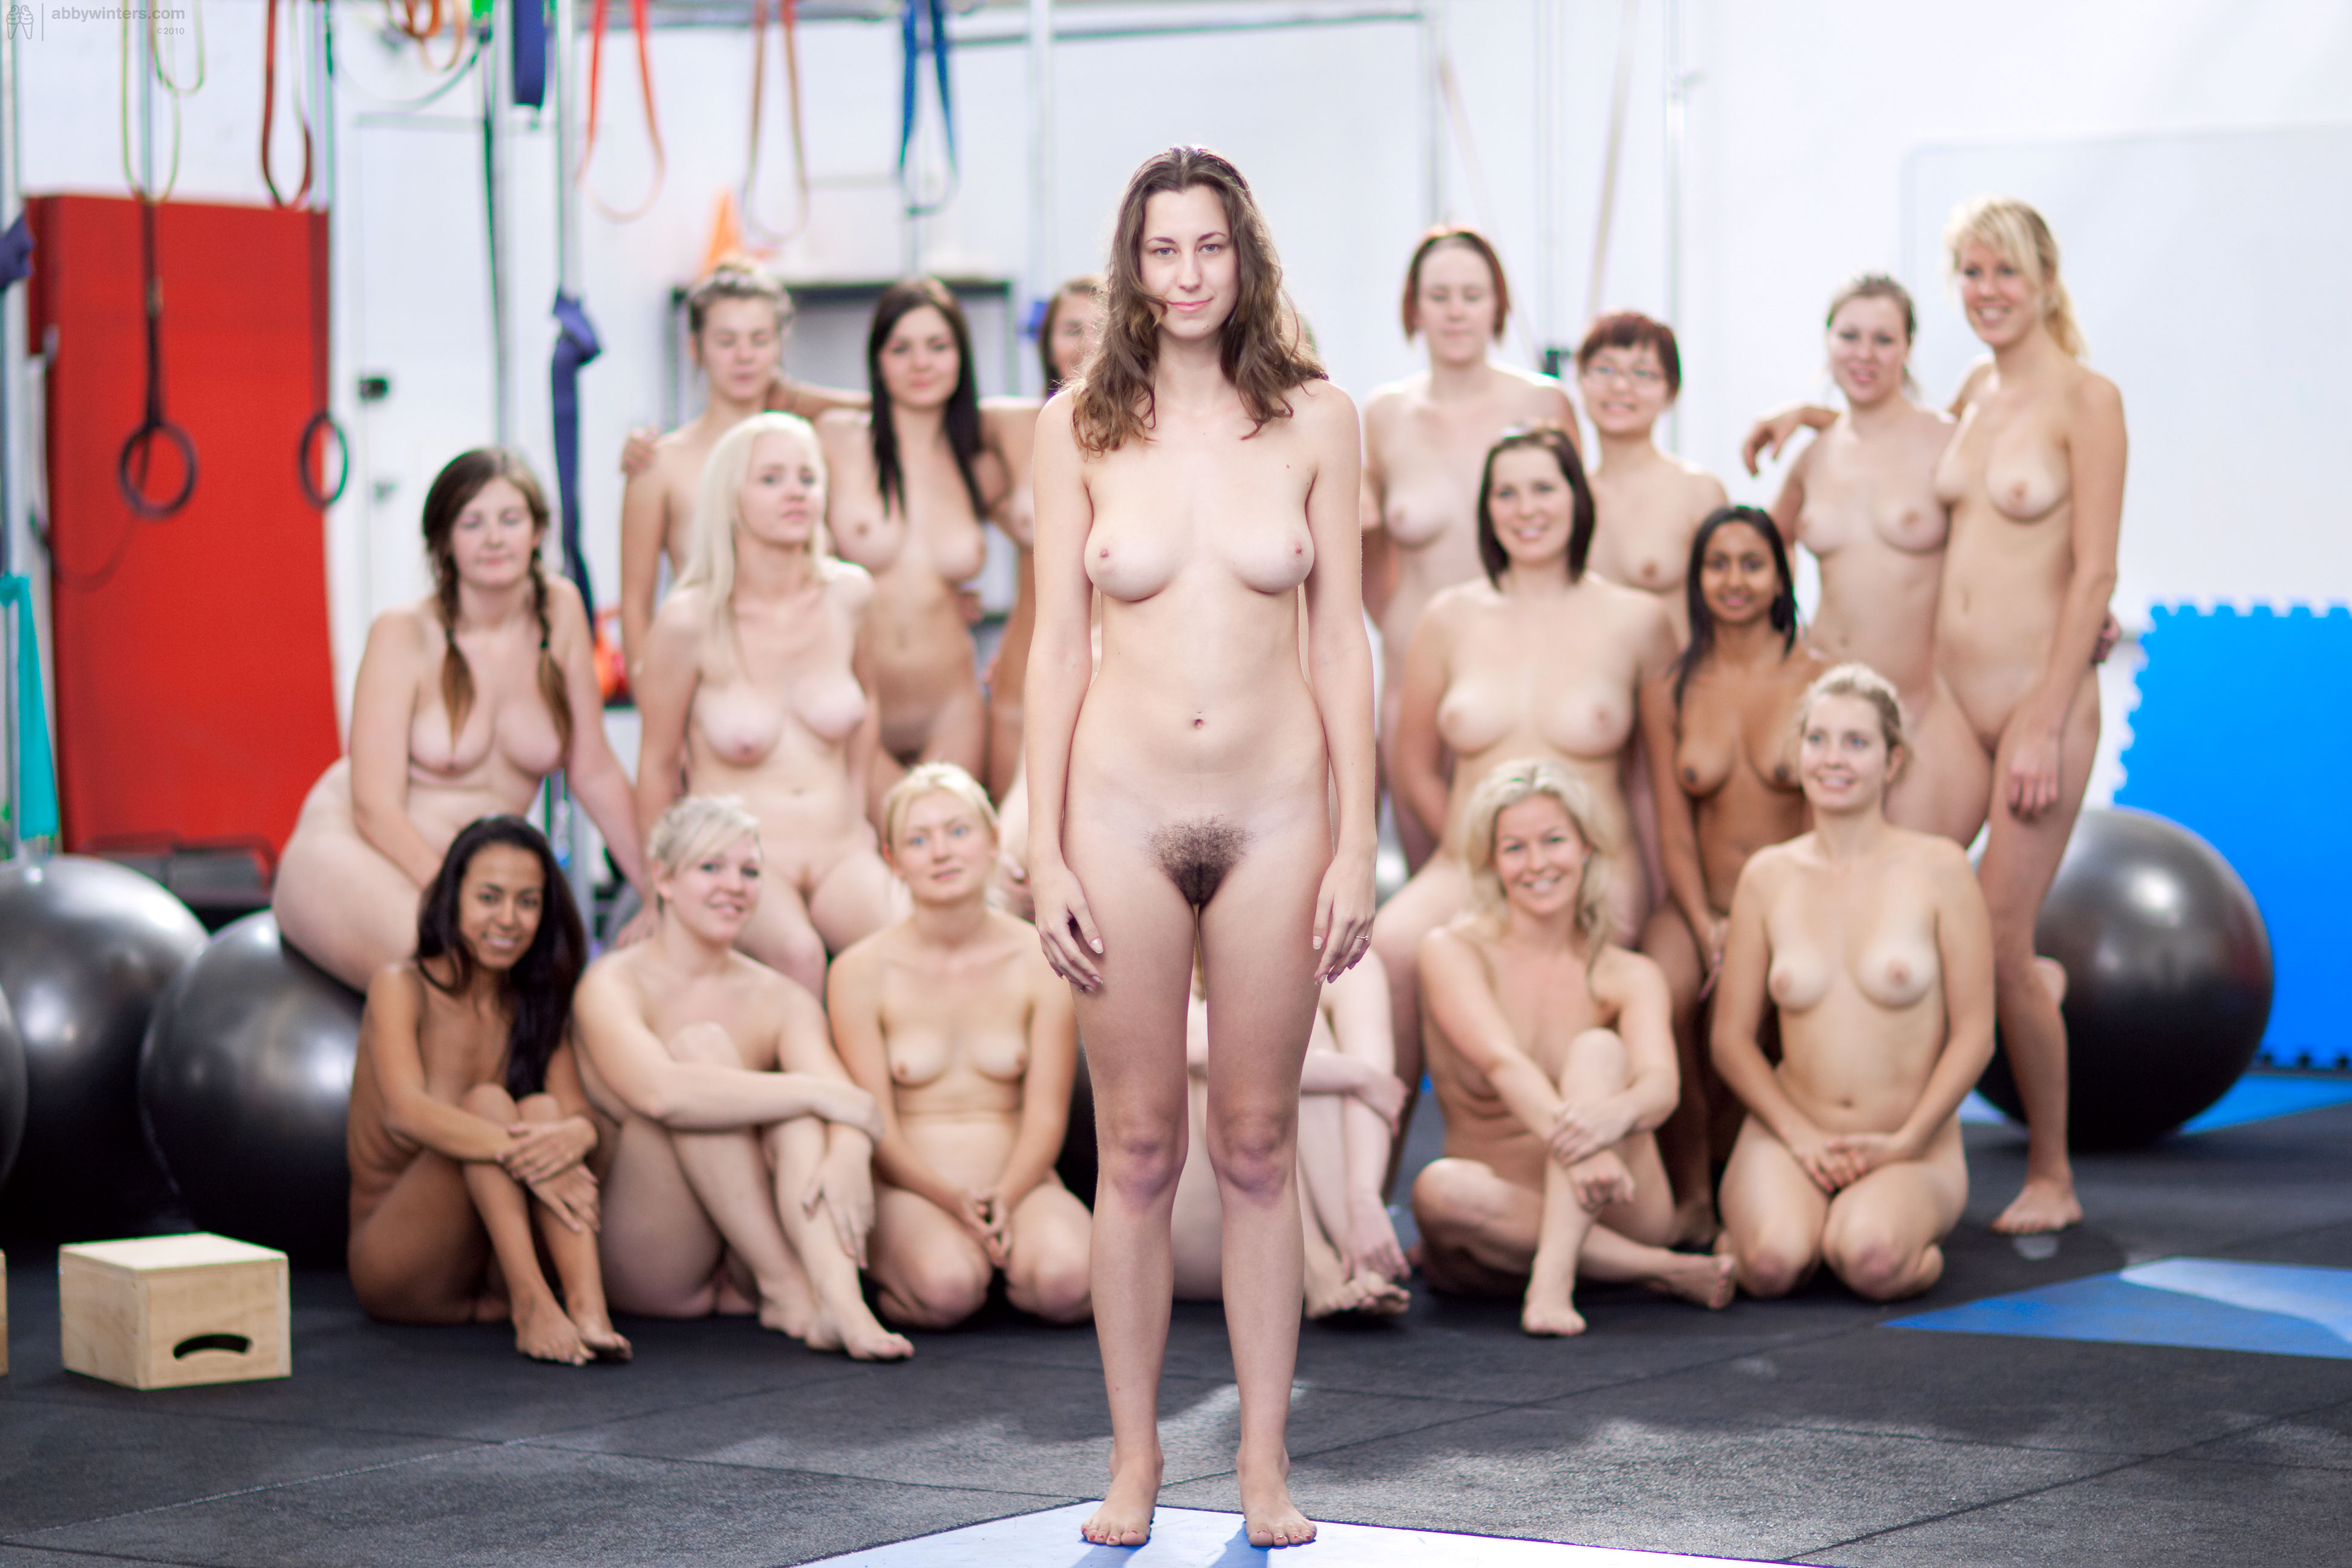 Apologise, but, Naked group pool are mistaken